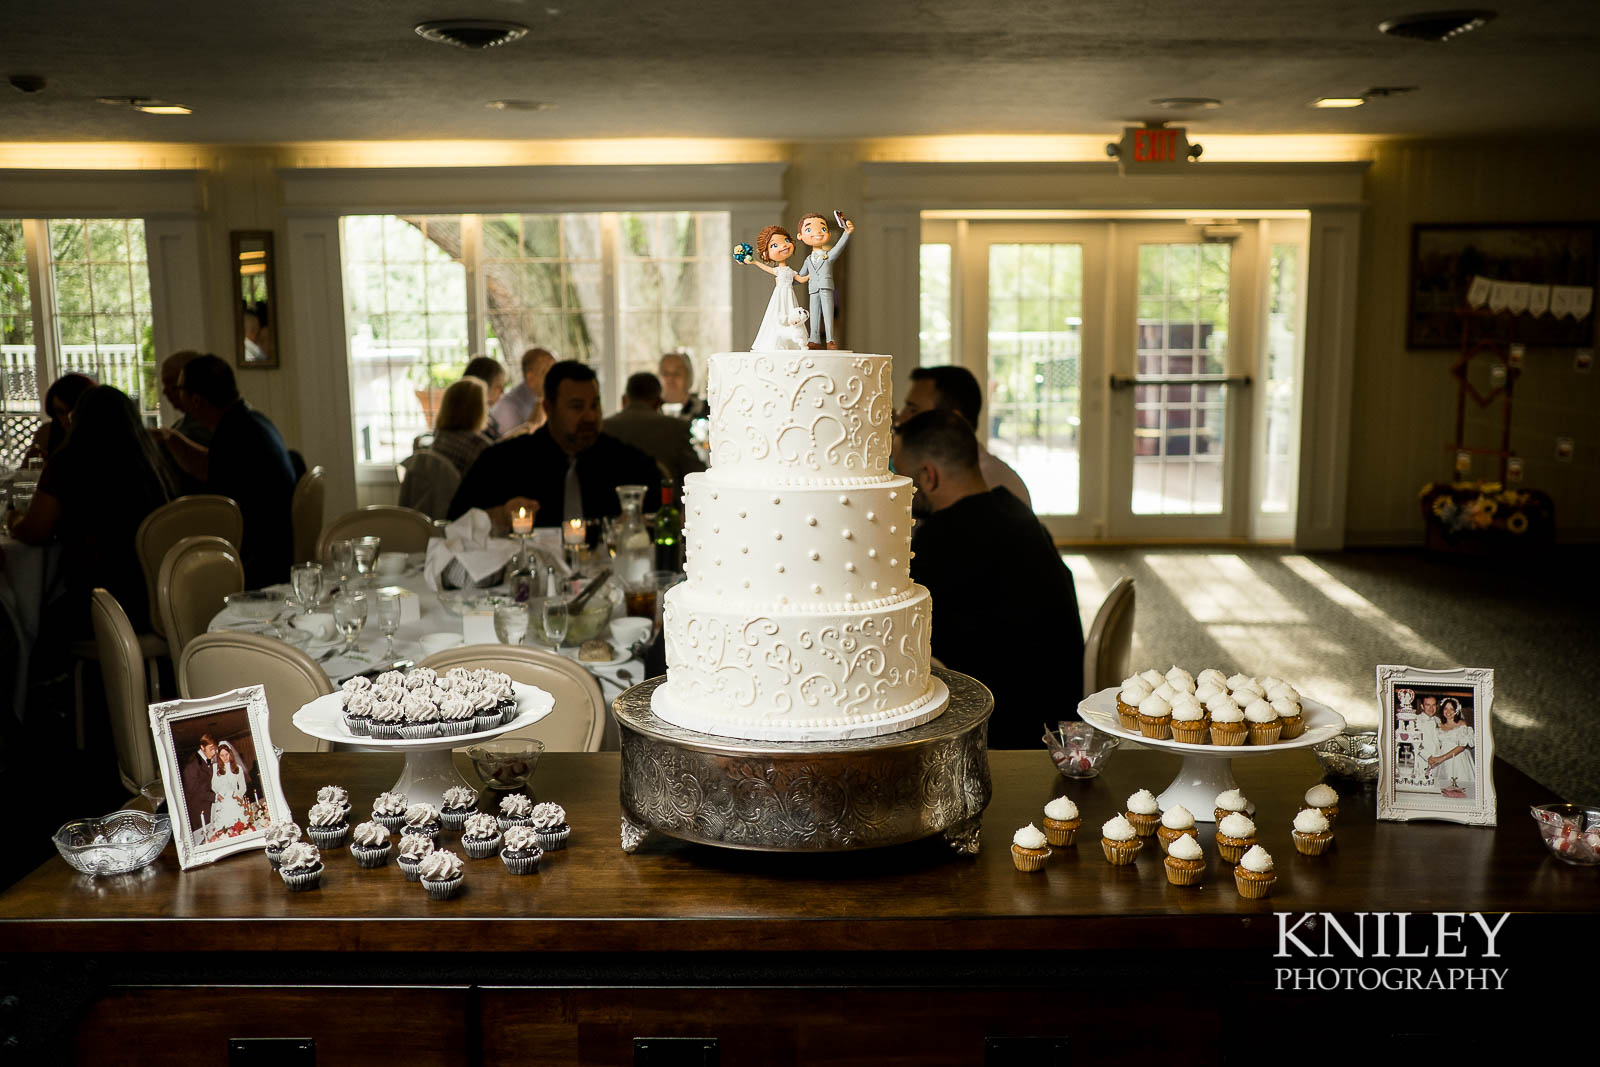 46-Plantation-Party-House-springtime-wedding-Rochester-NY-Kniley-Photography.jpg